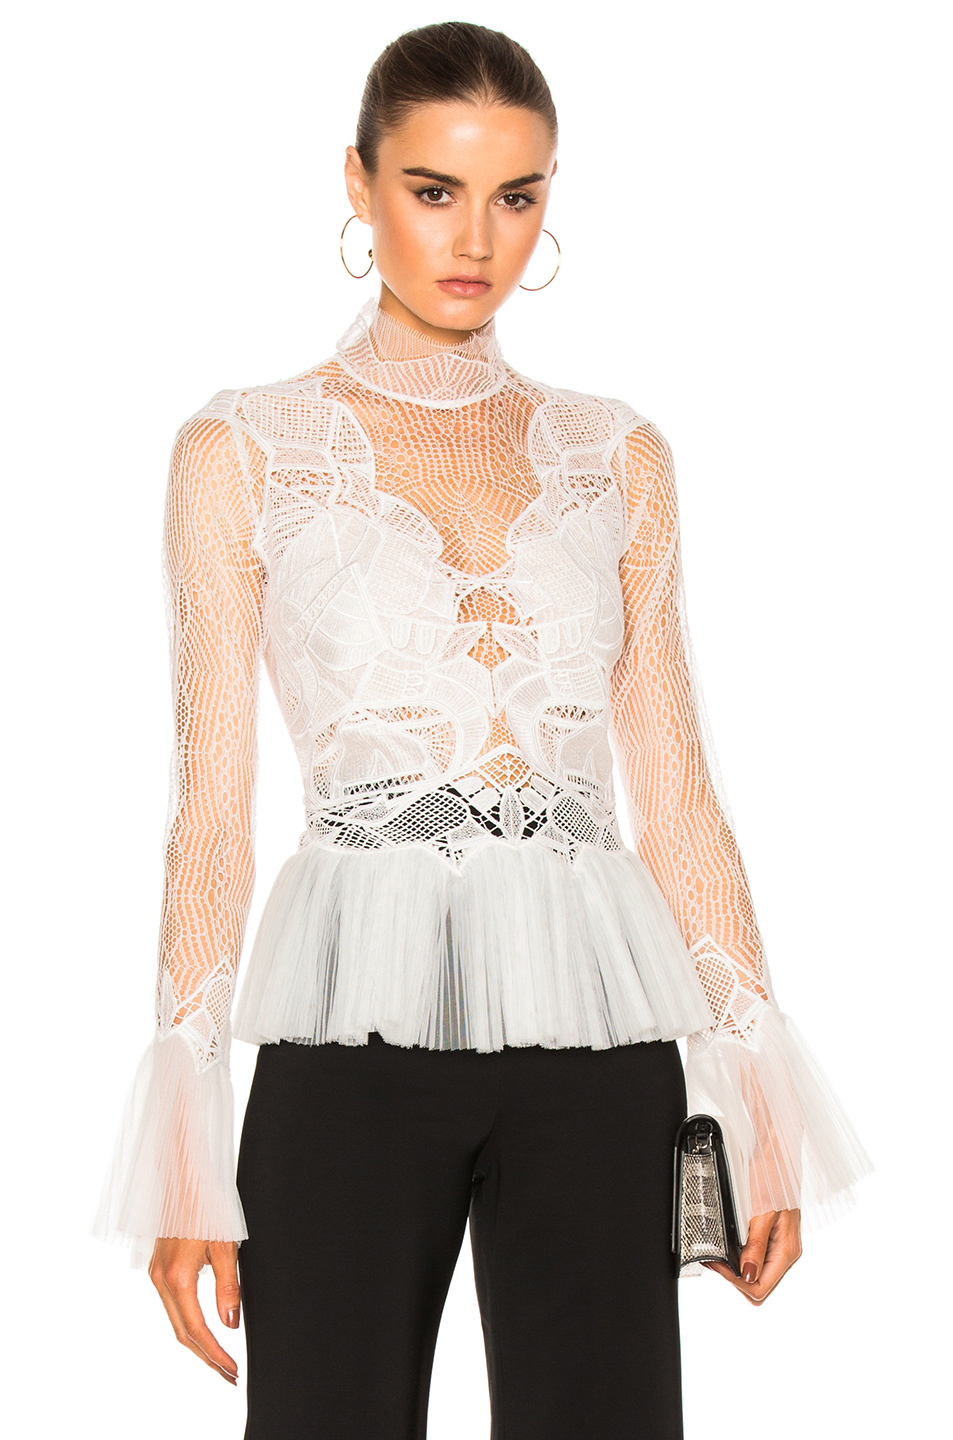 JONATHAN SIMKHAI Linear Dome Pleated Top in White